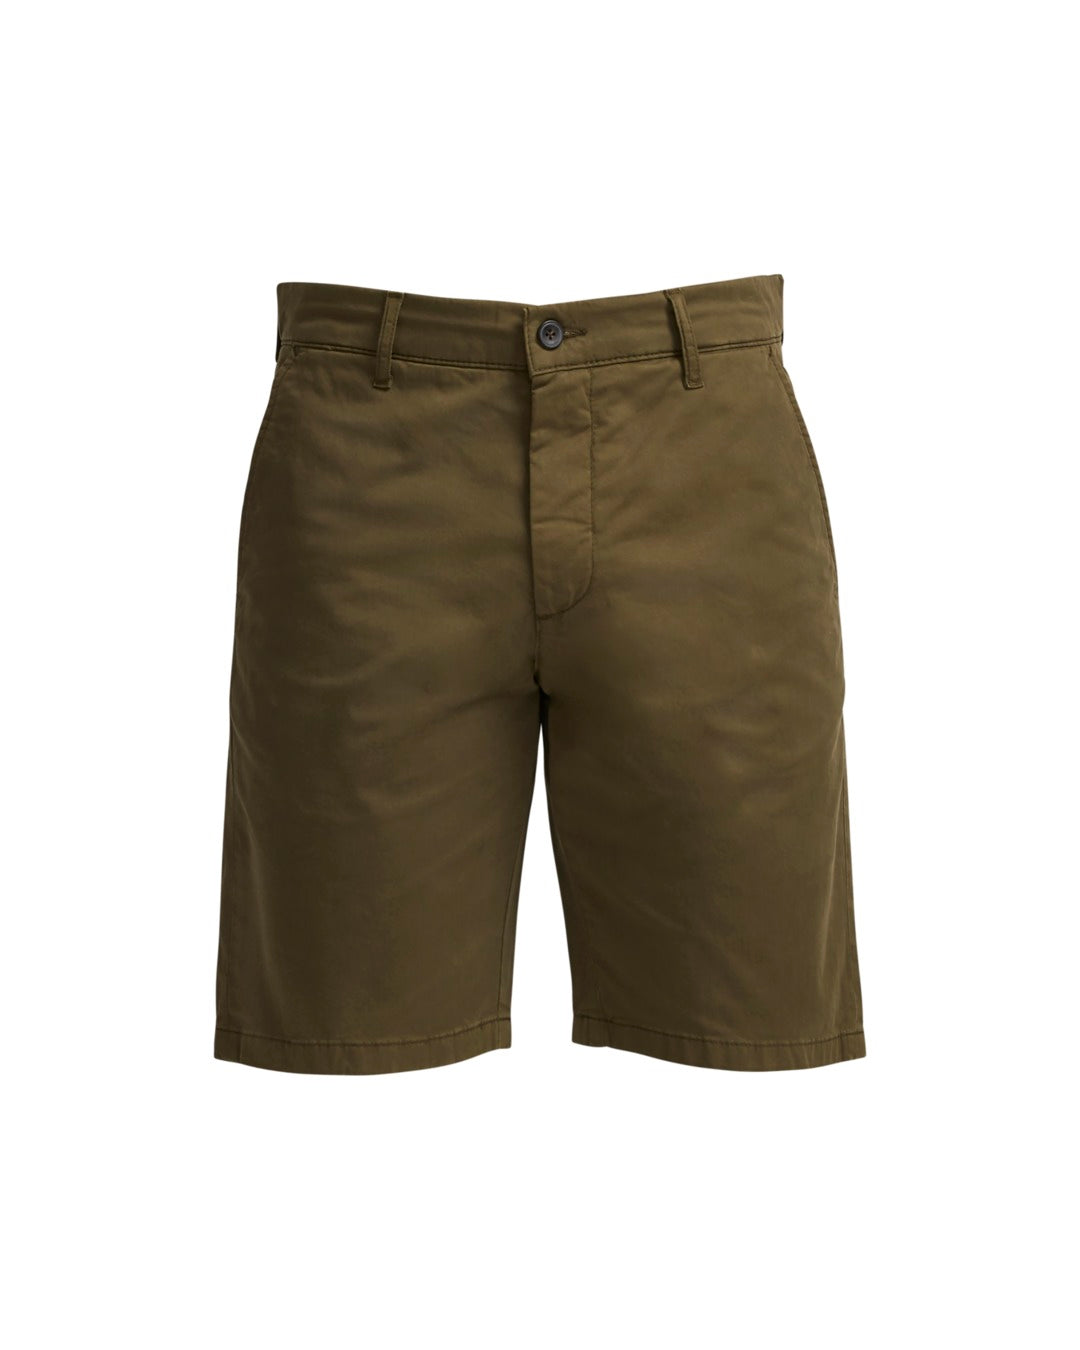 NN07 – CROWN SHORTS 1004 333